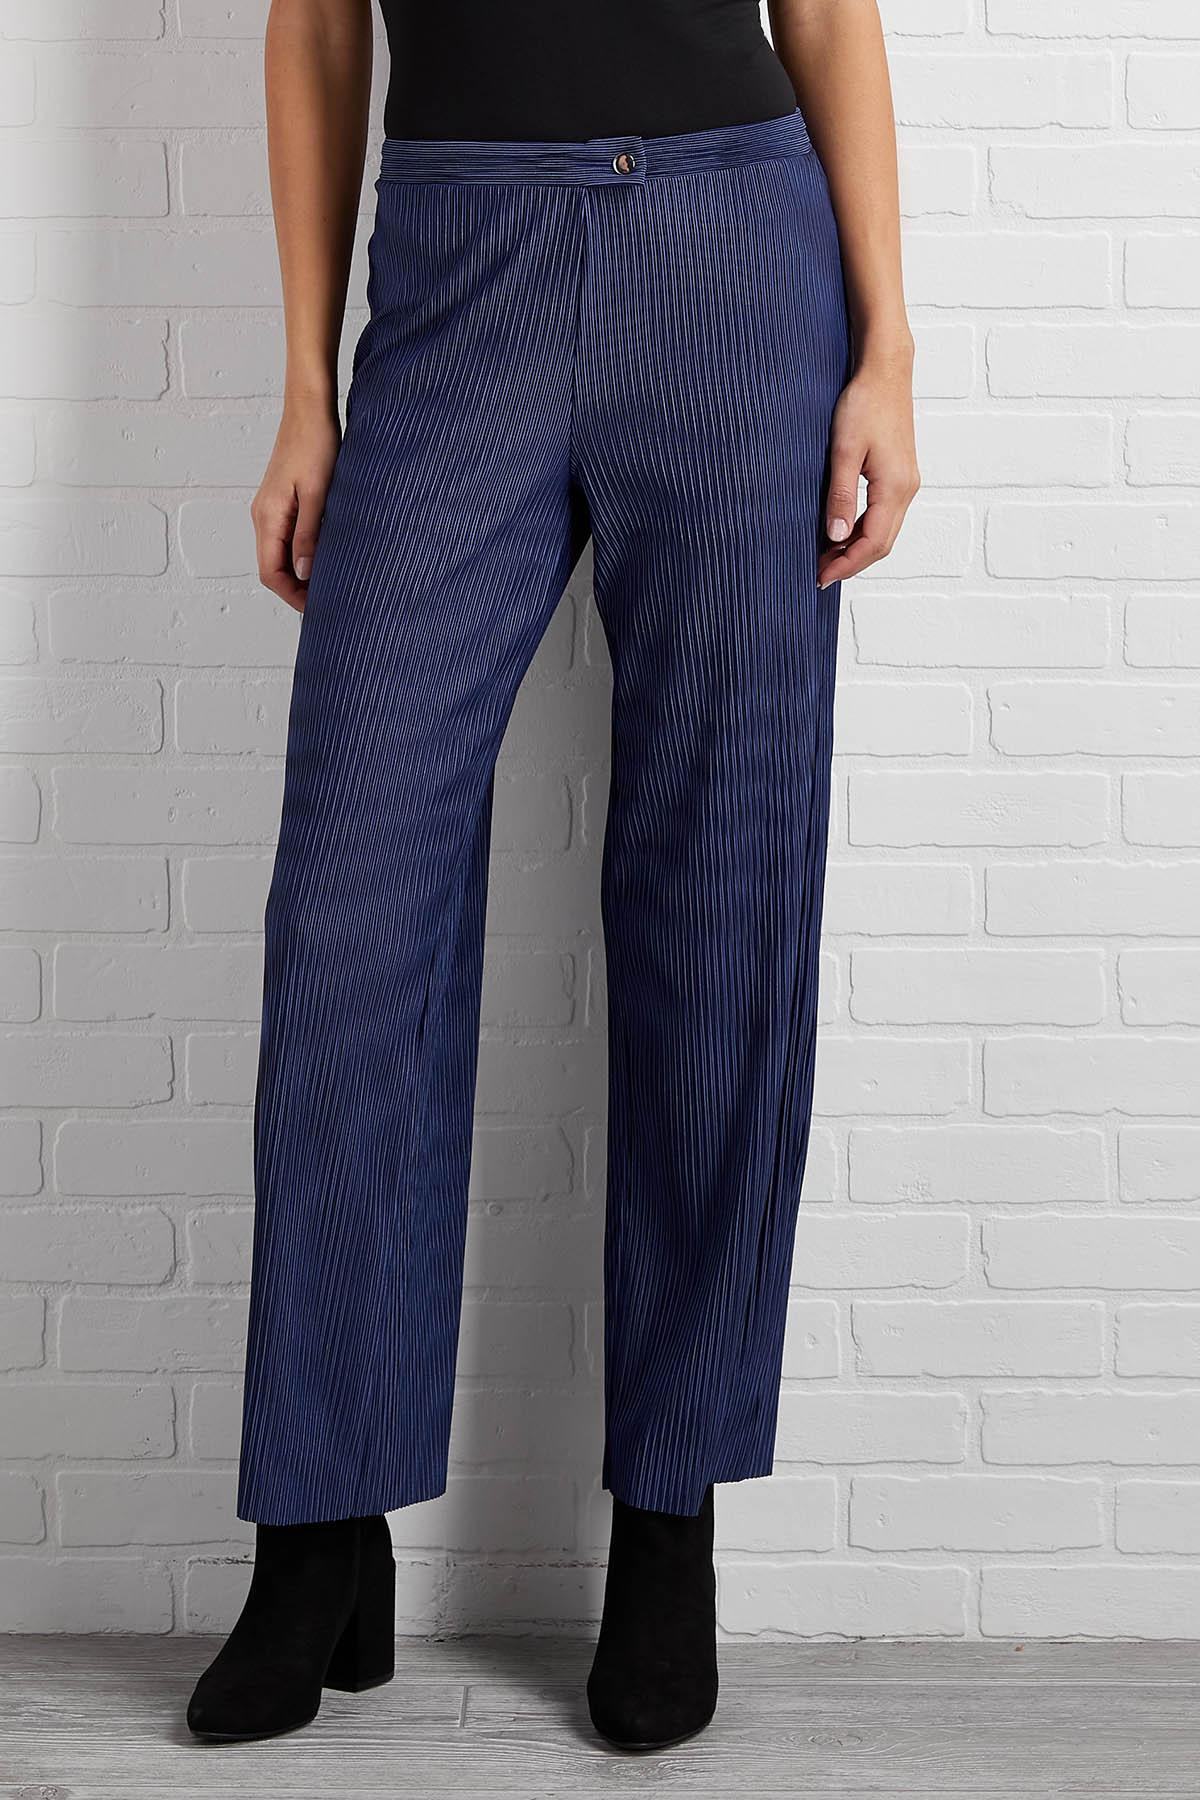 Arms Wide Open Pants